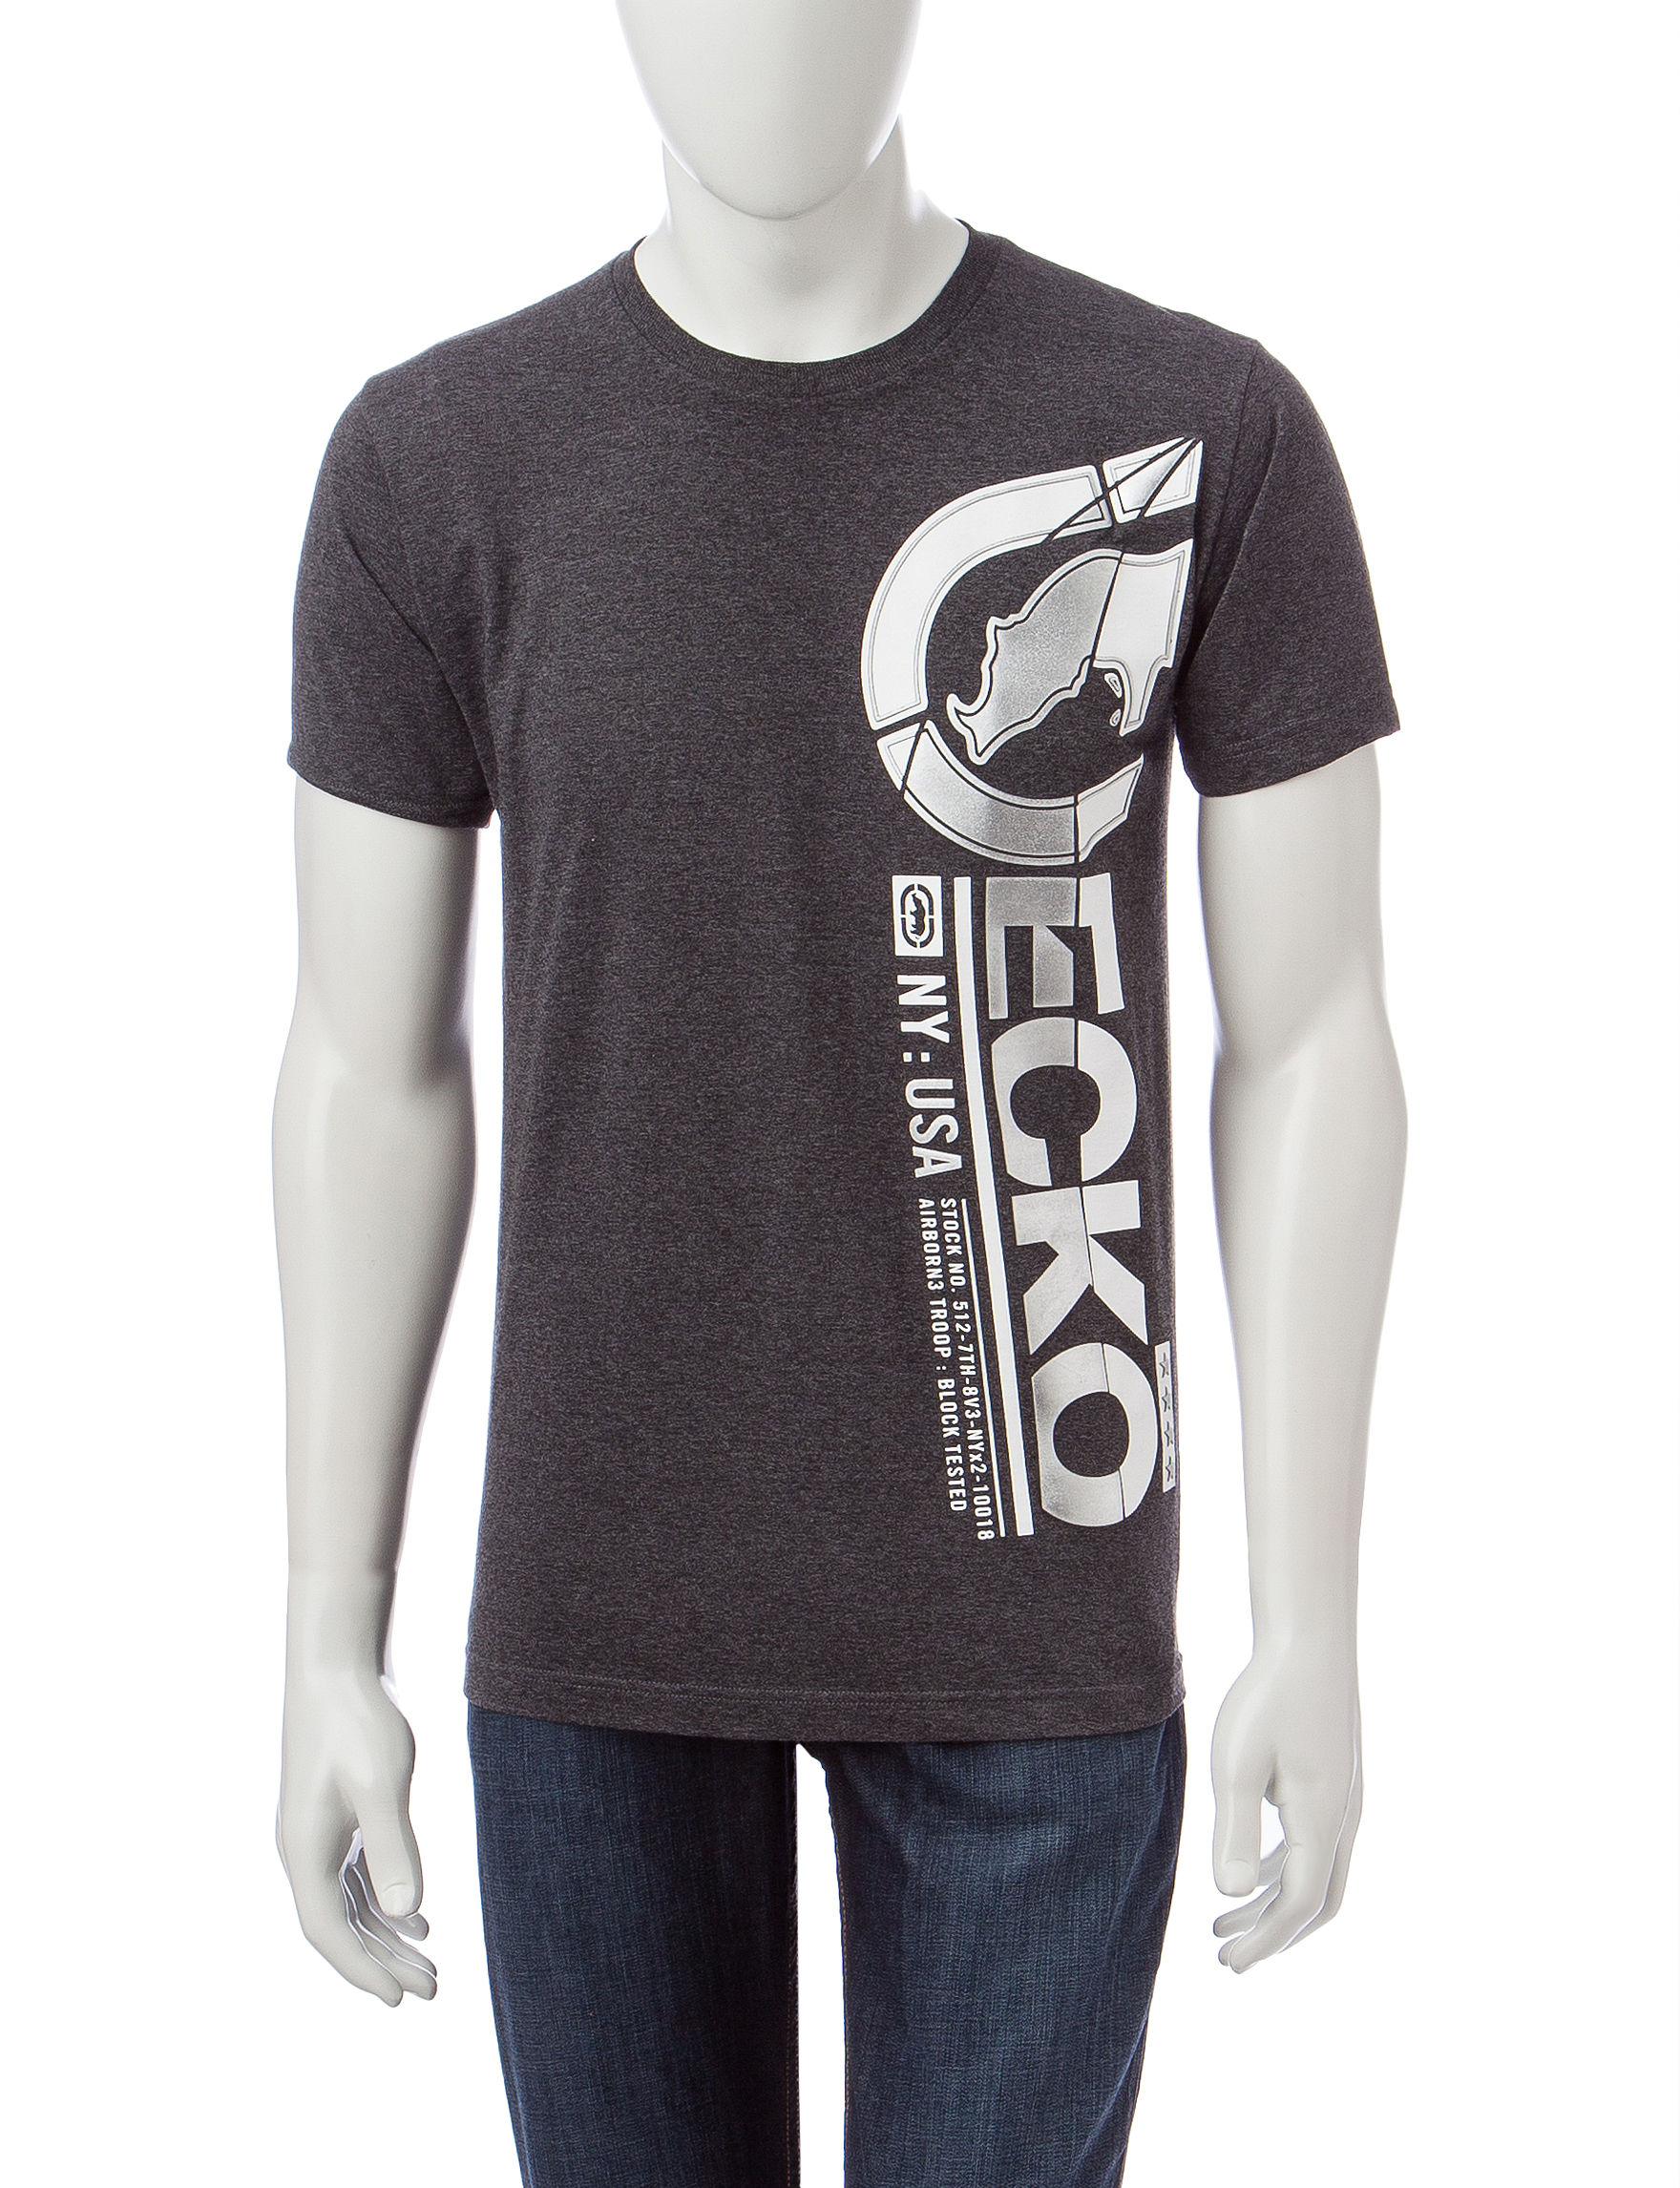 Ecko Grey Tees & Tanks